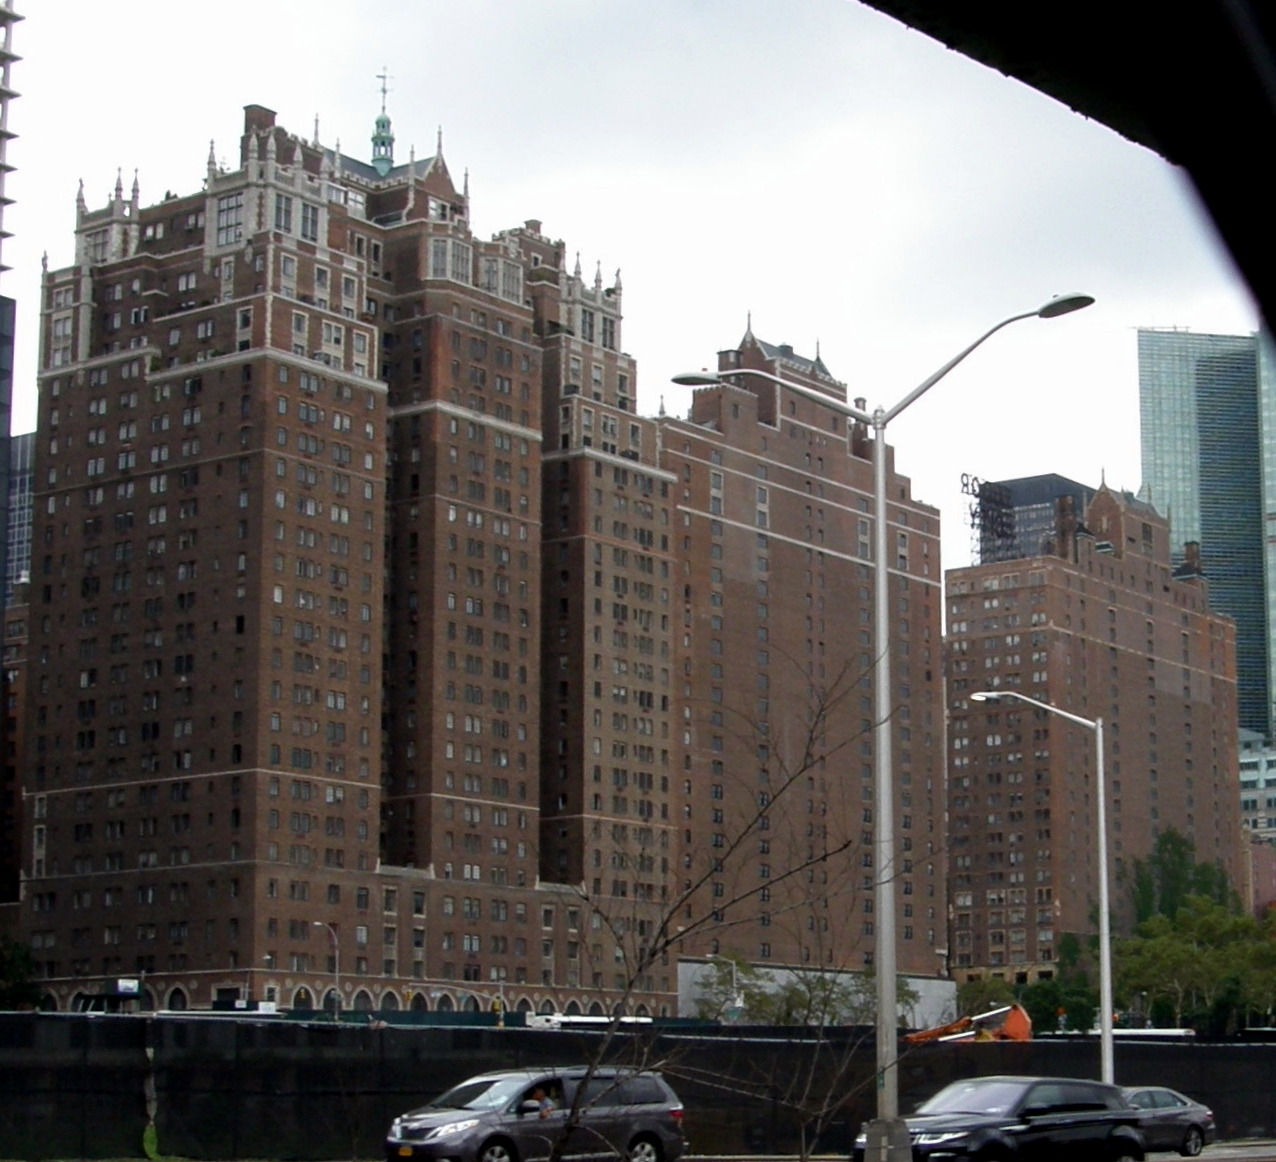 The First avenue side of Tudor City